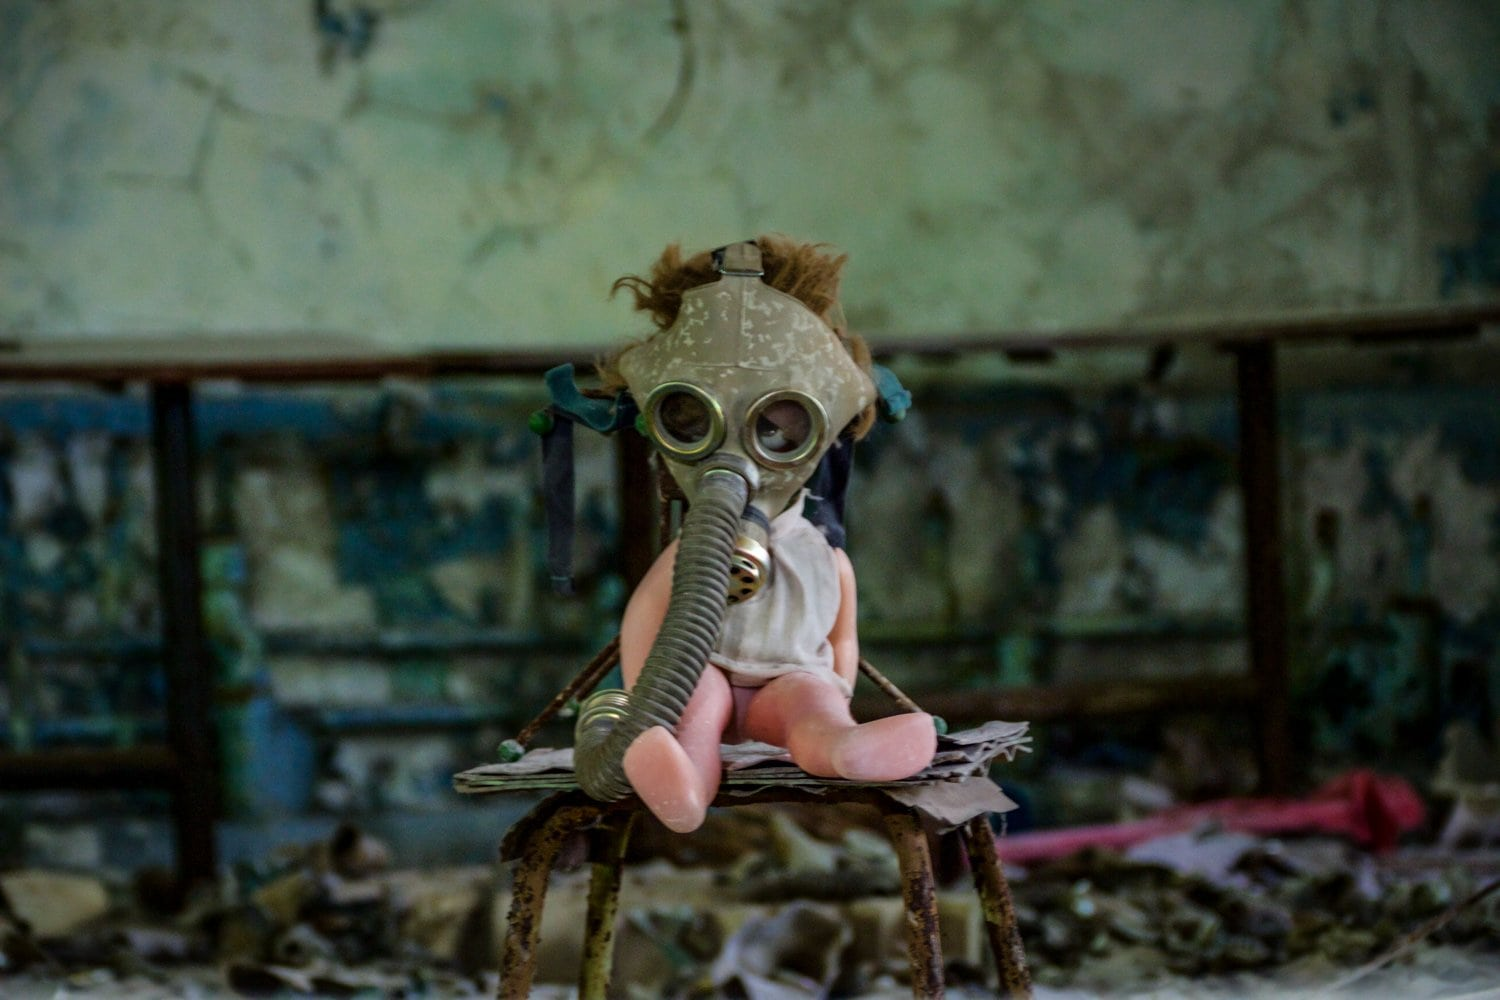 The Ghosts of the Residents & Children of Chernobyl